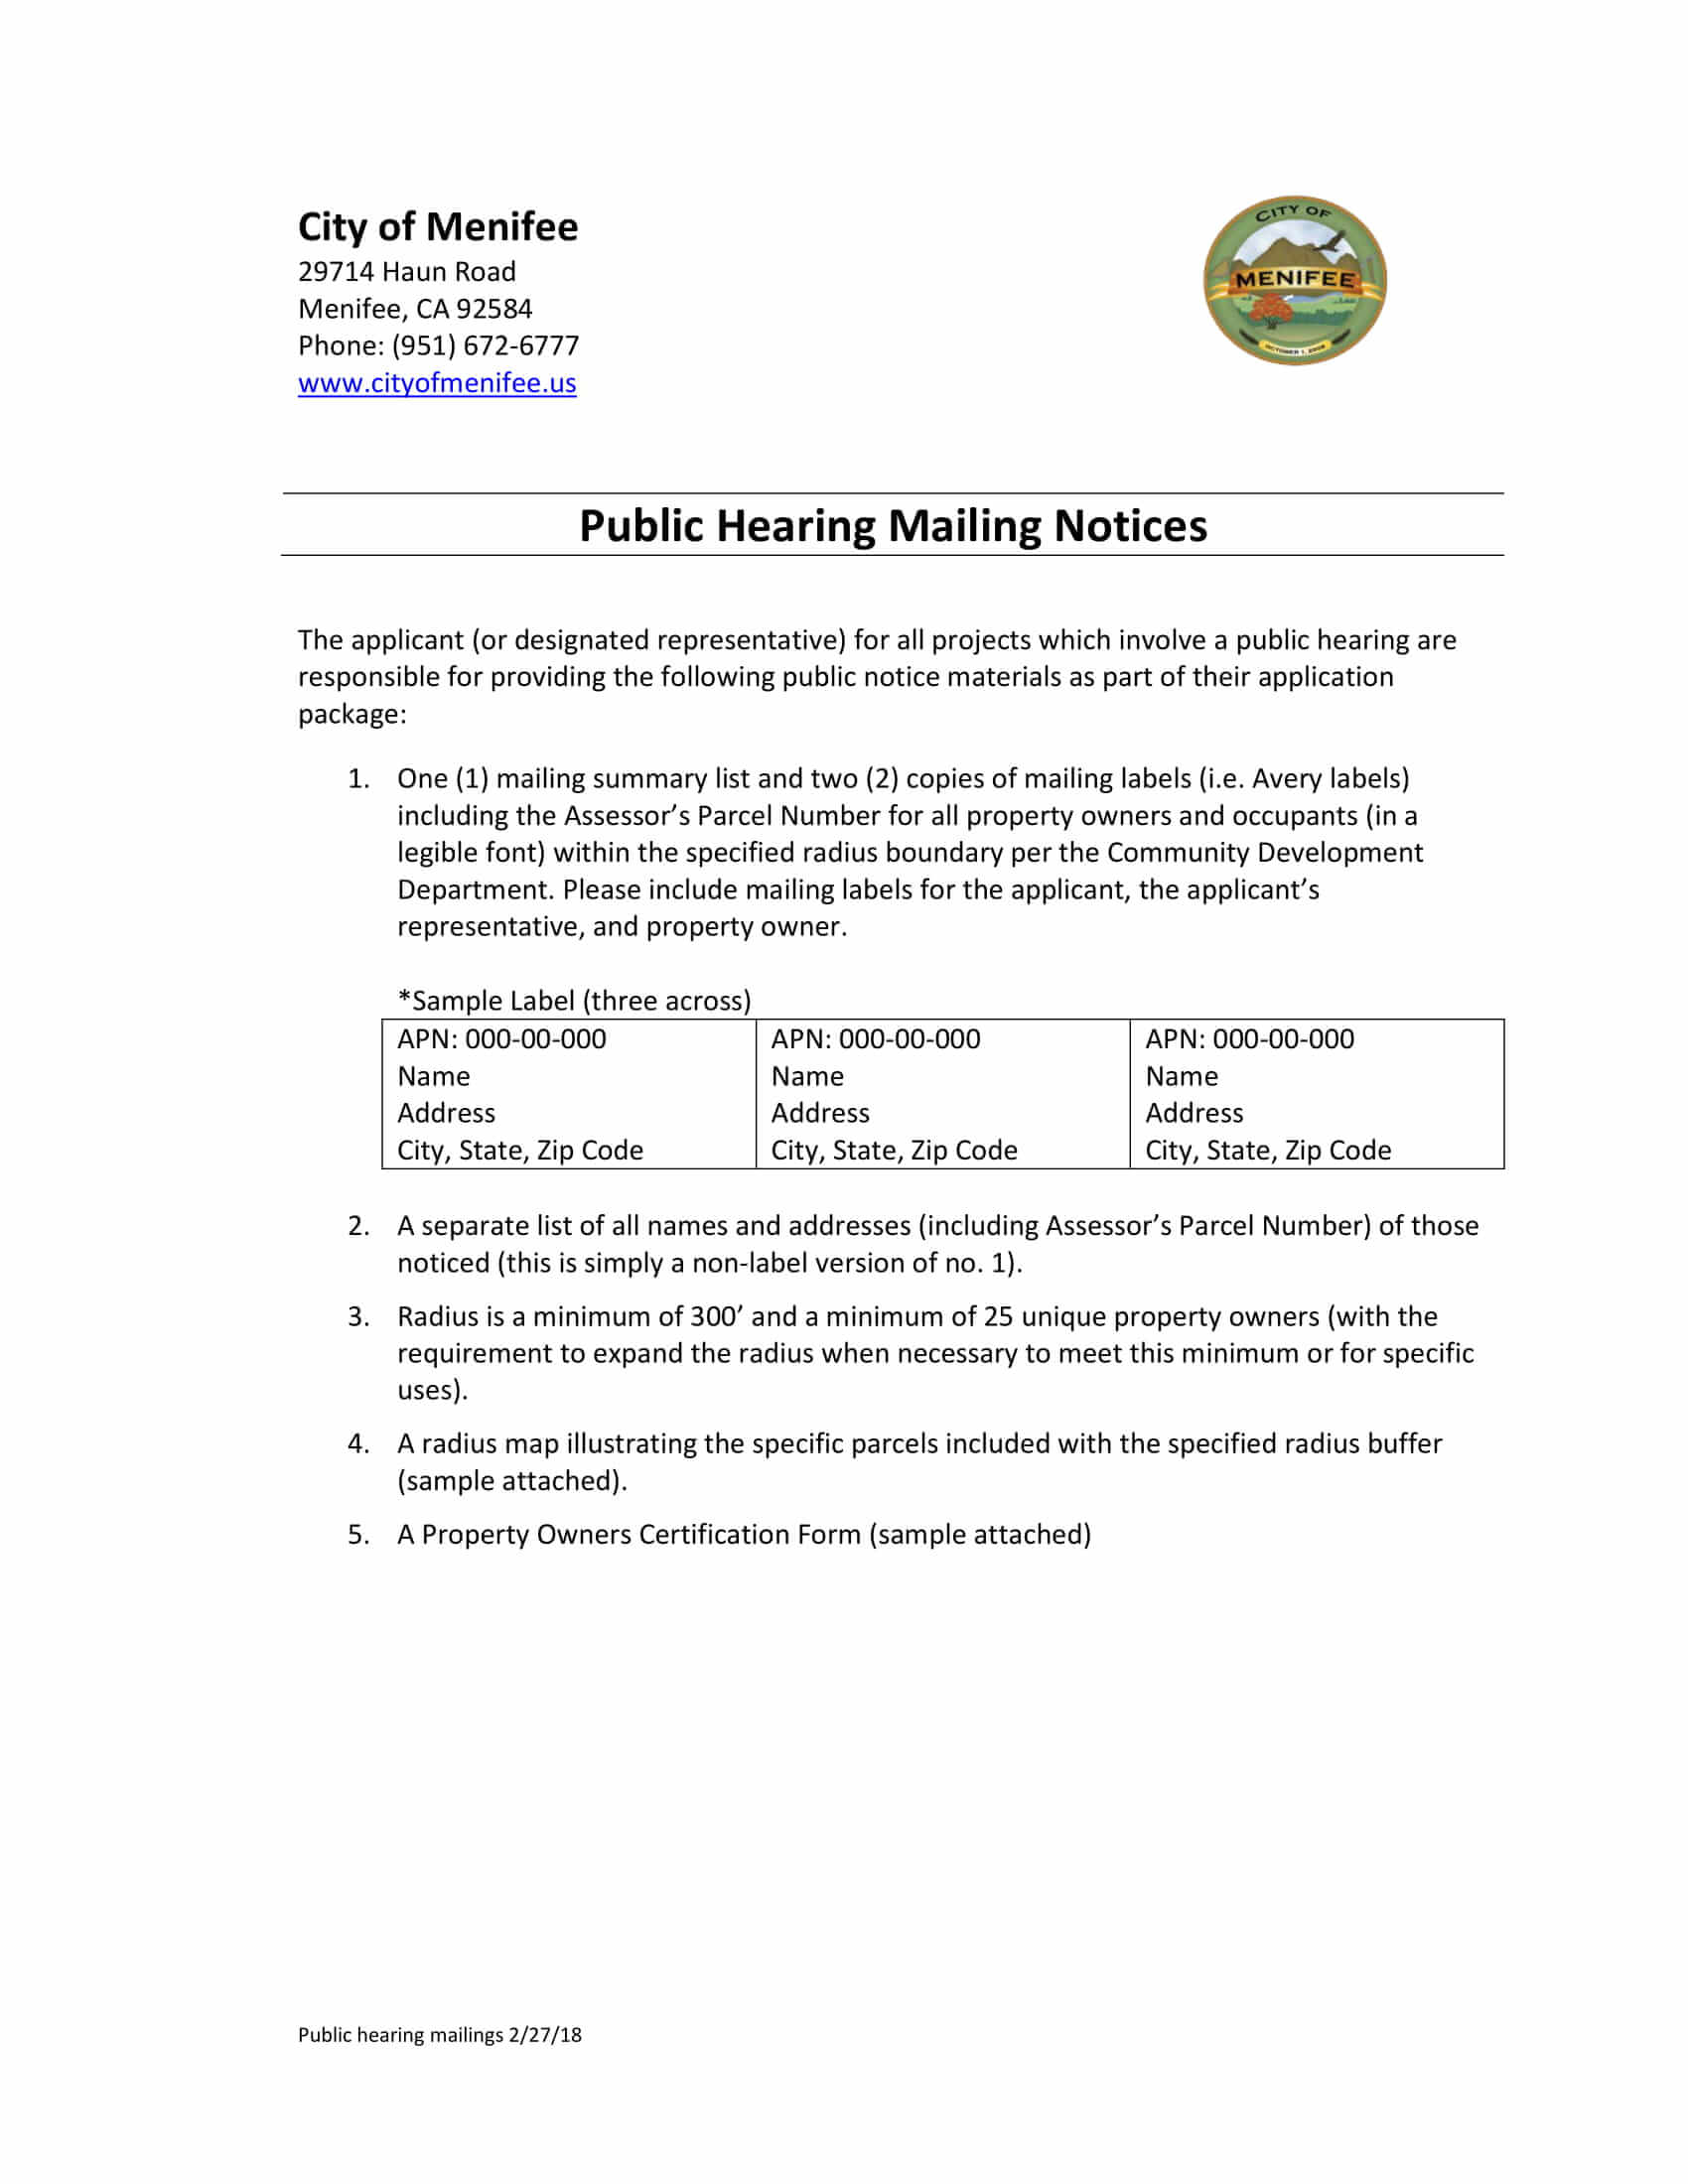 Menifee Public Hearing Mailing Notices. Mailing List Summary Mailing Labels for all property owners and occupants. Radius is a minimum of 300' and a minimum of 25 unique property owners.